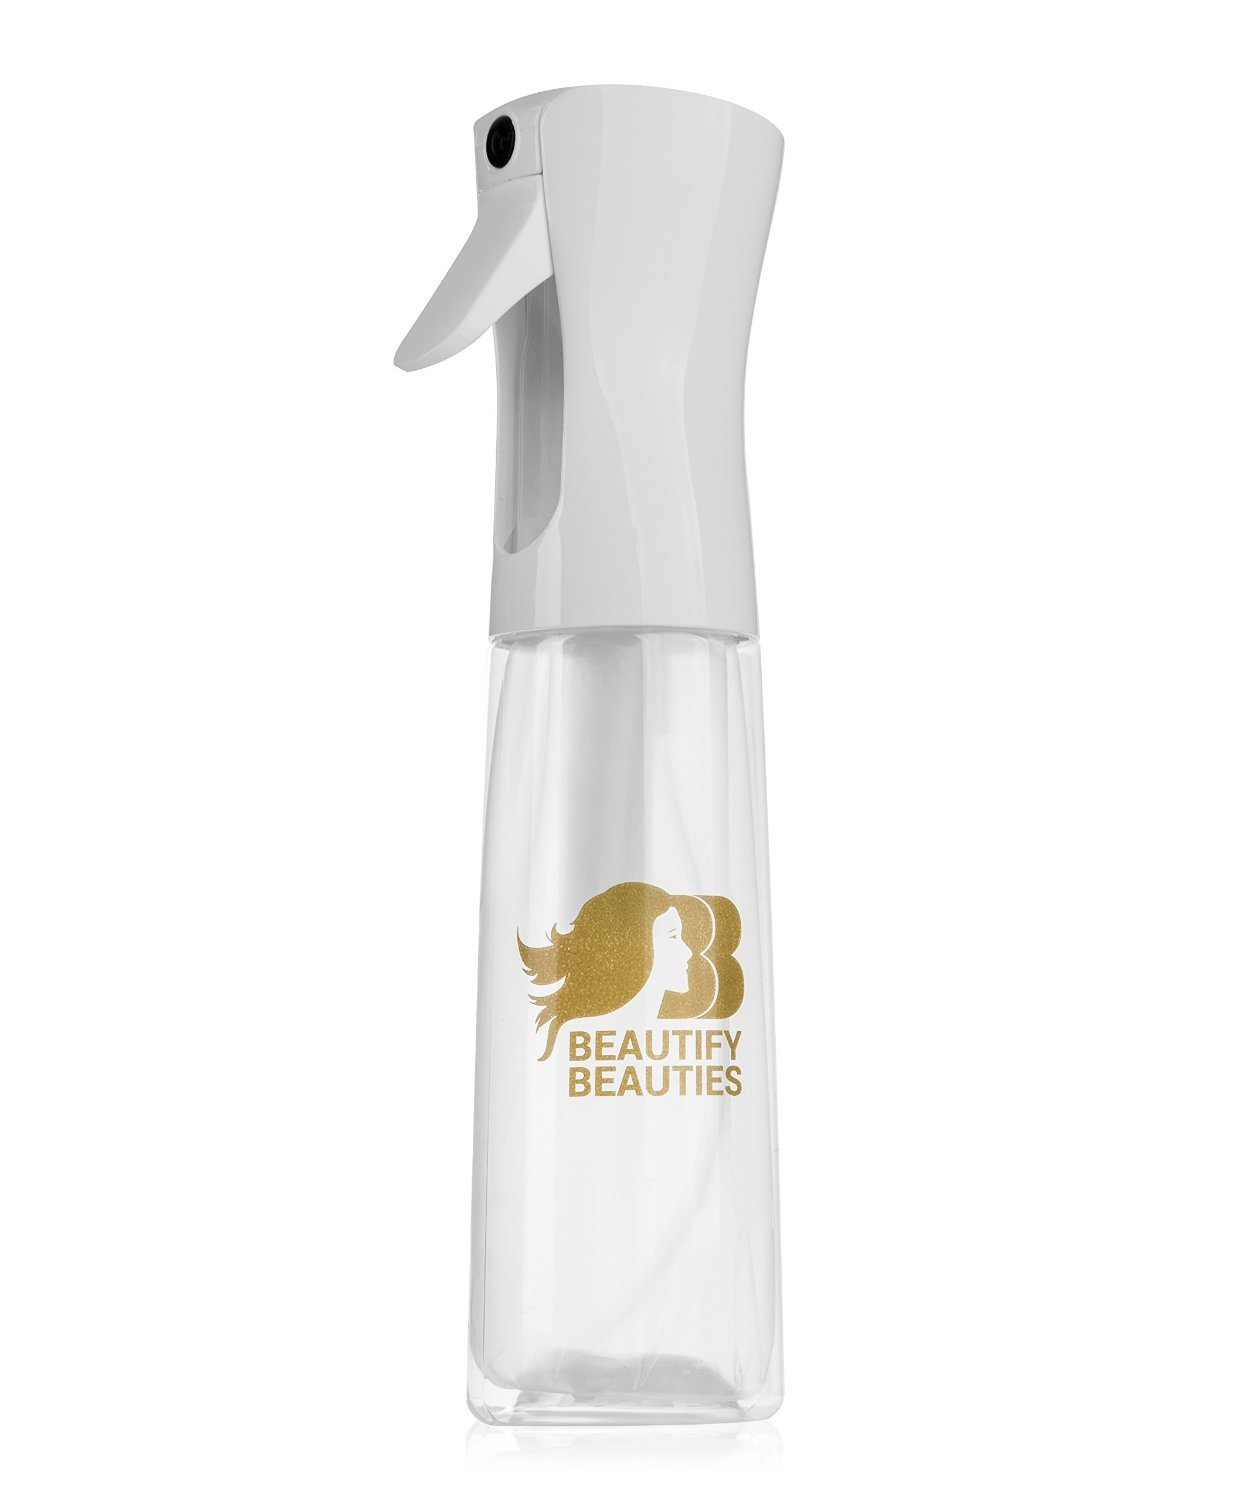 Beautify Beauties Flairosol Empty Clear Spray Bottle, 10 Ounce